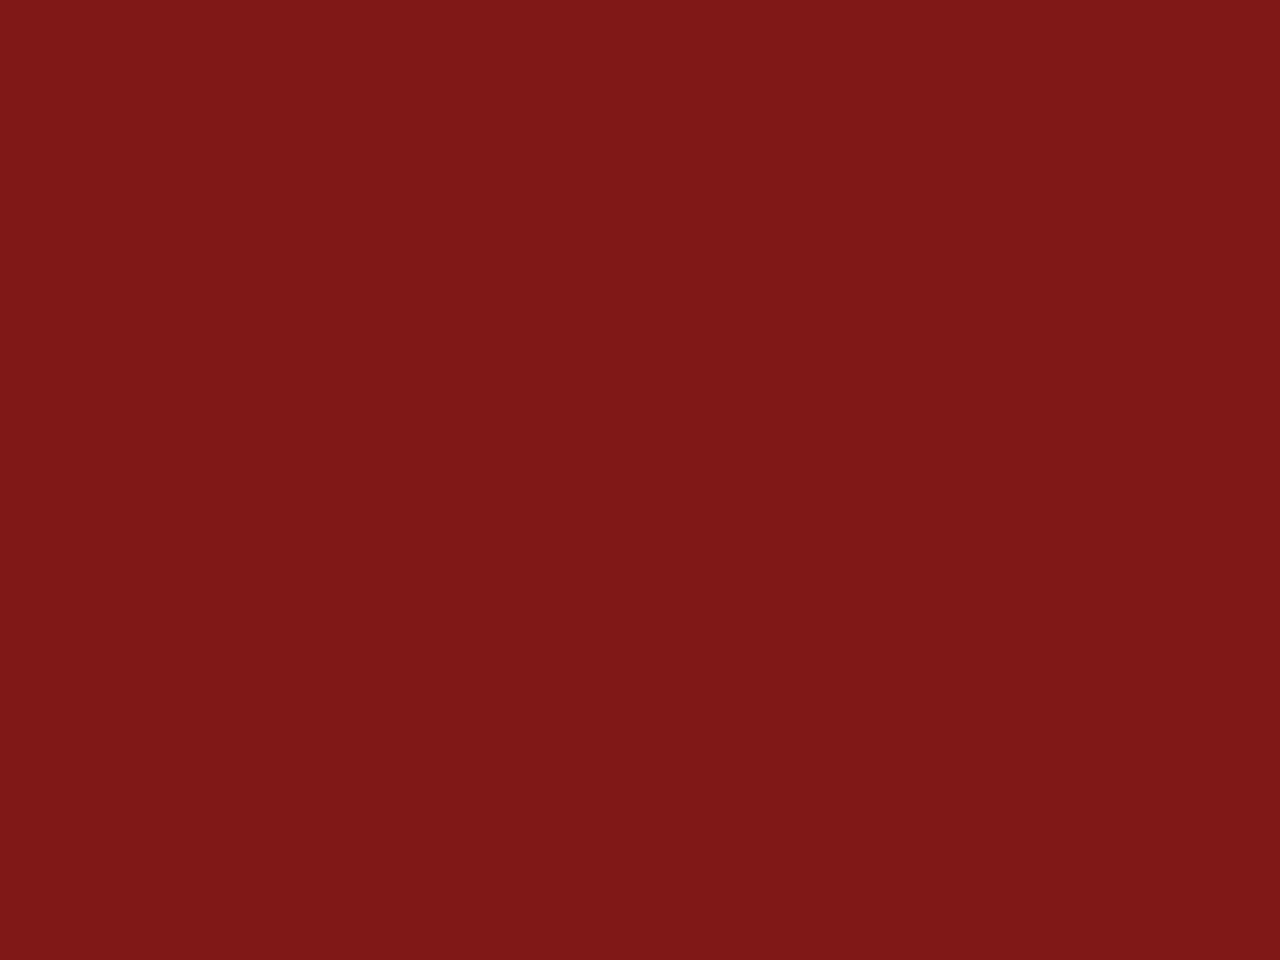 1280x960 Falu Red Solid Color Background